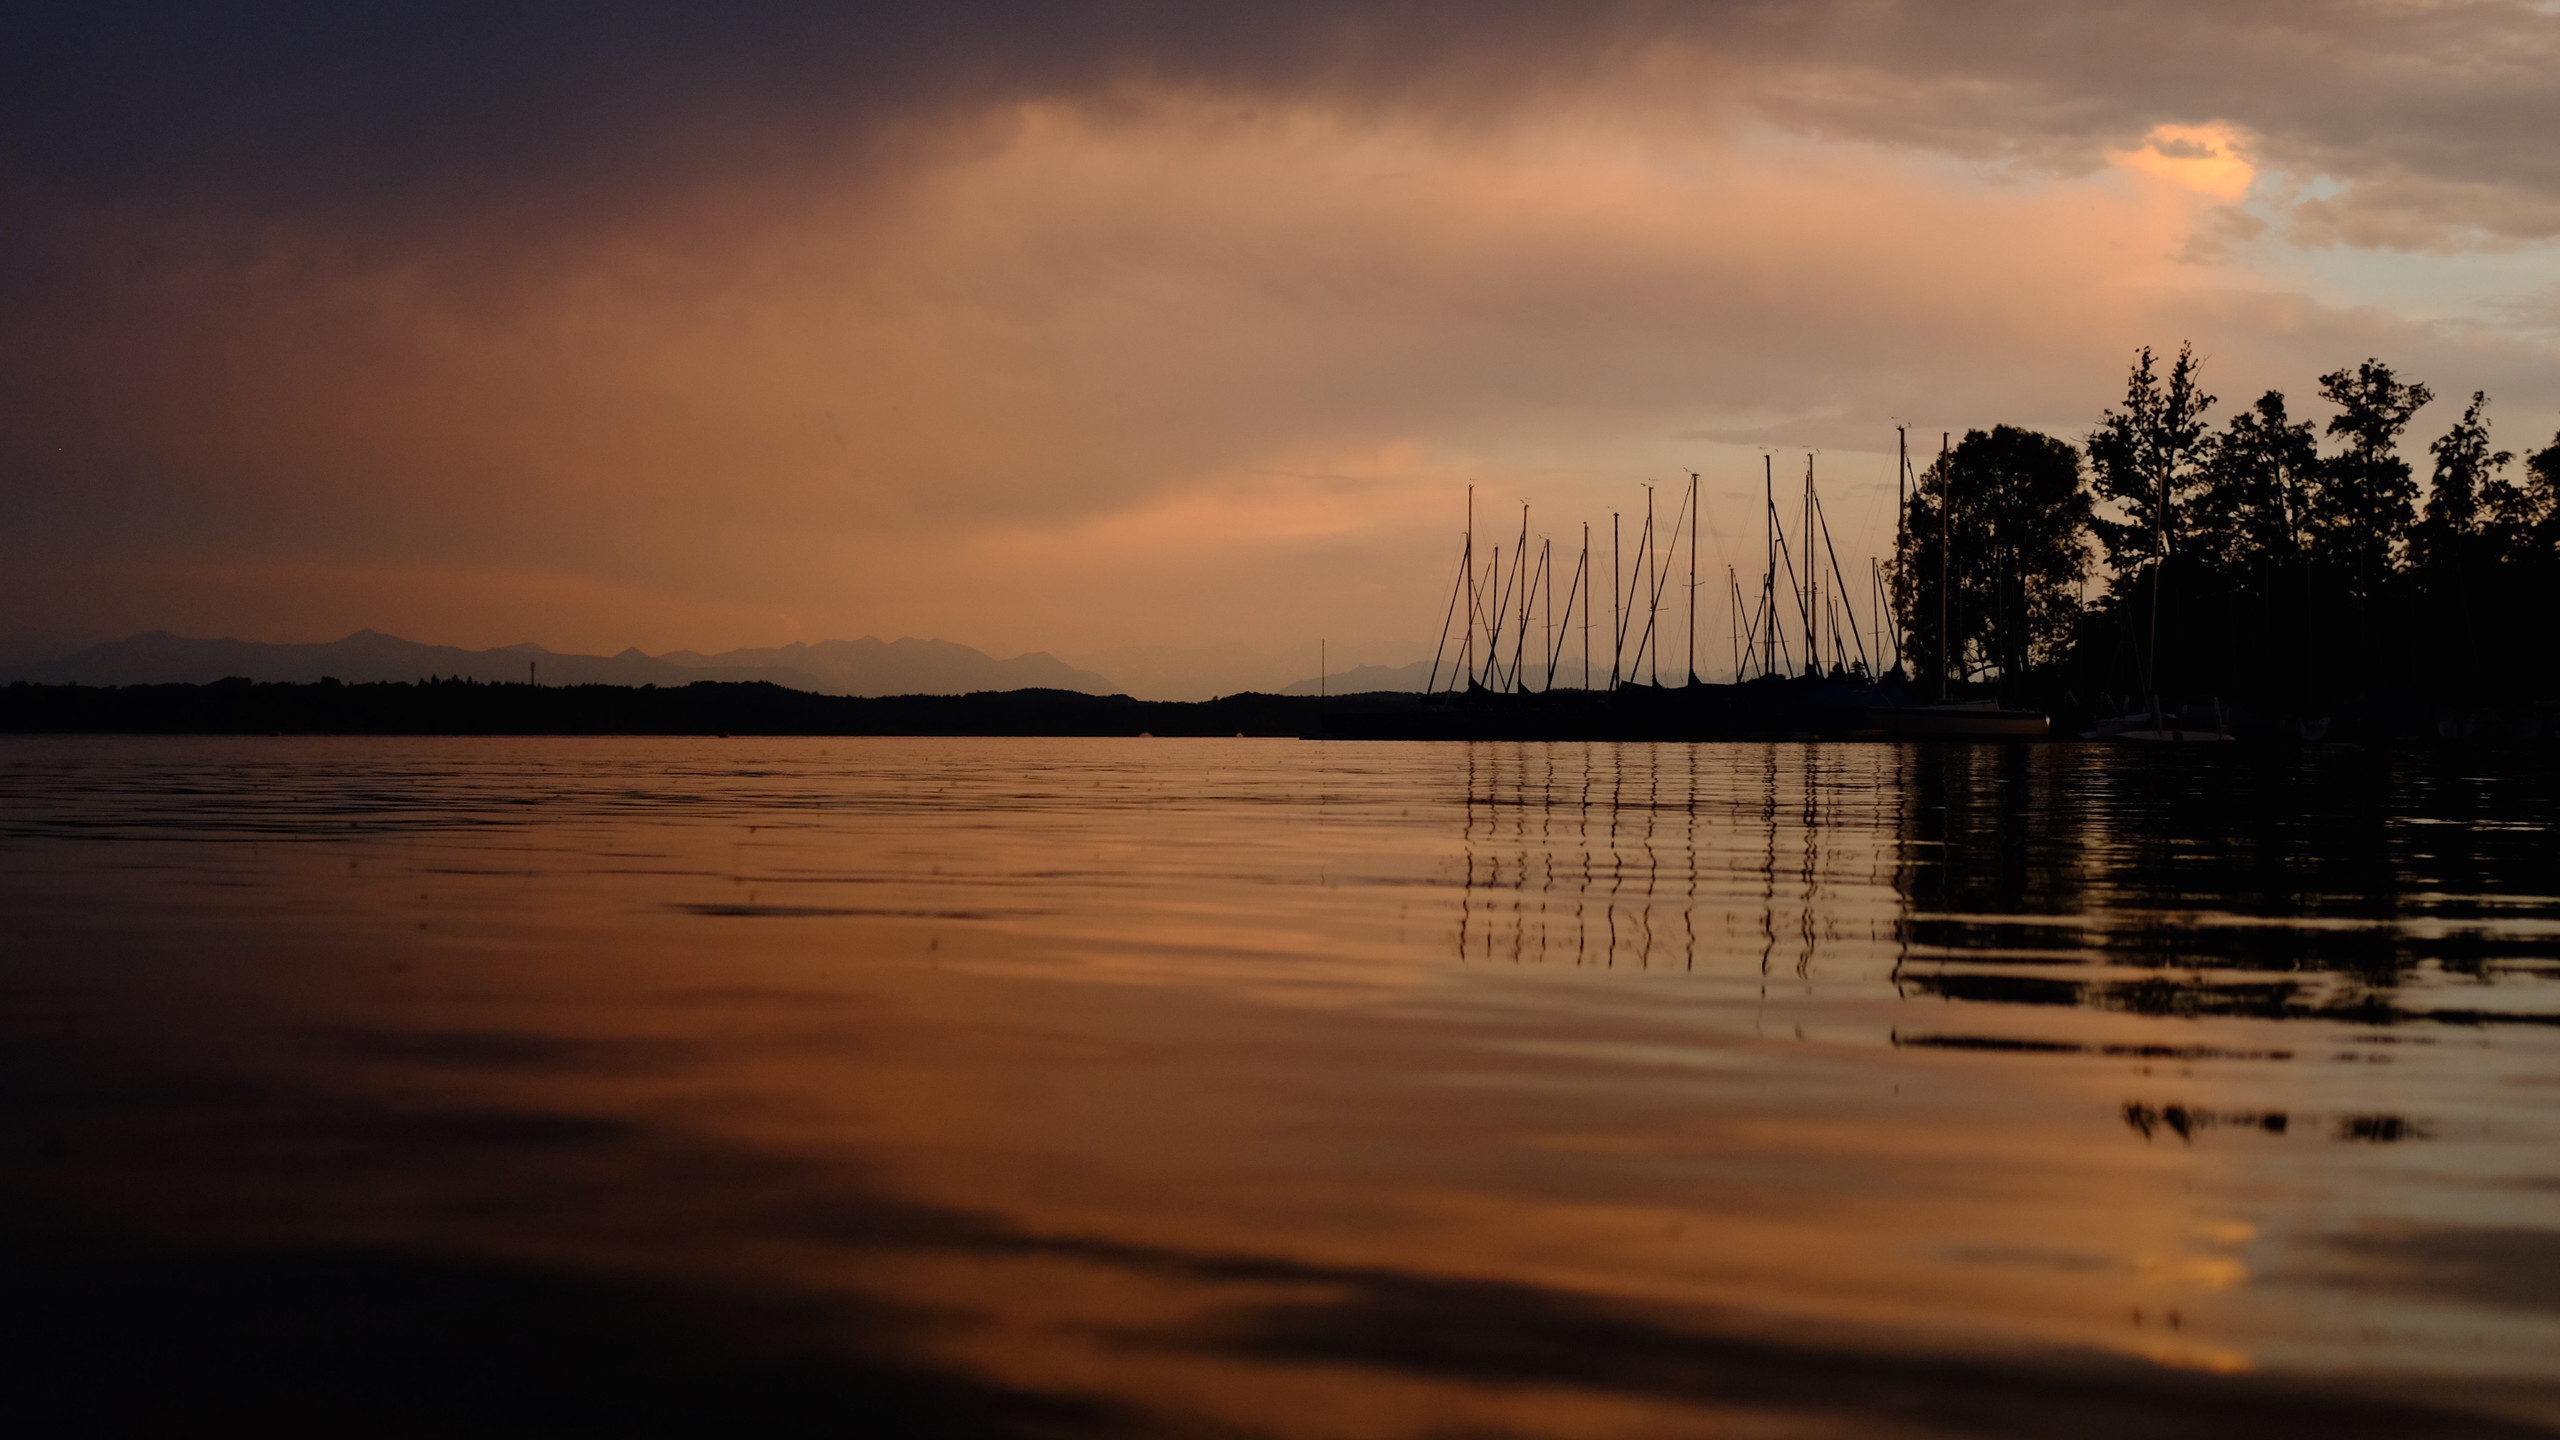 Lake Starnberg in the evening